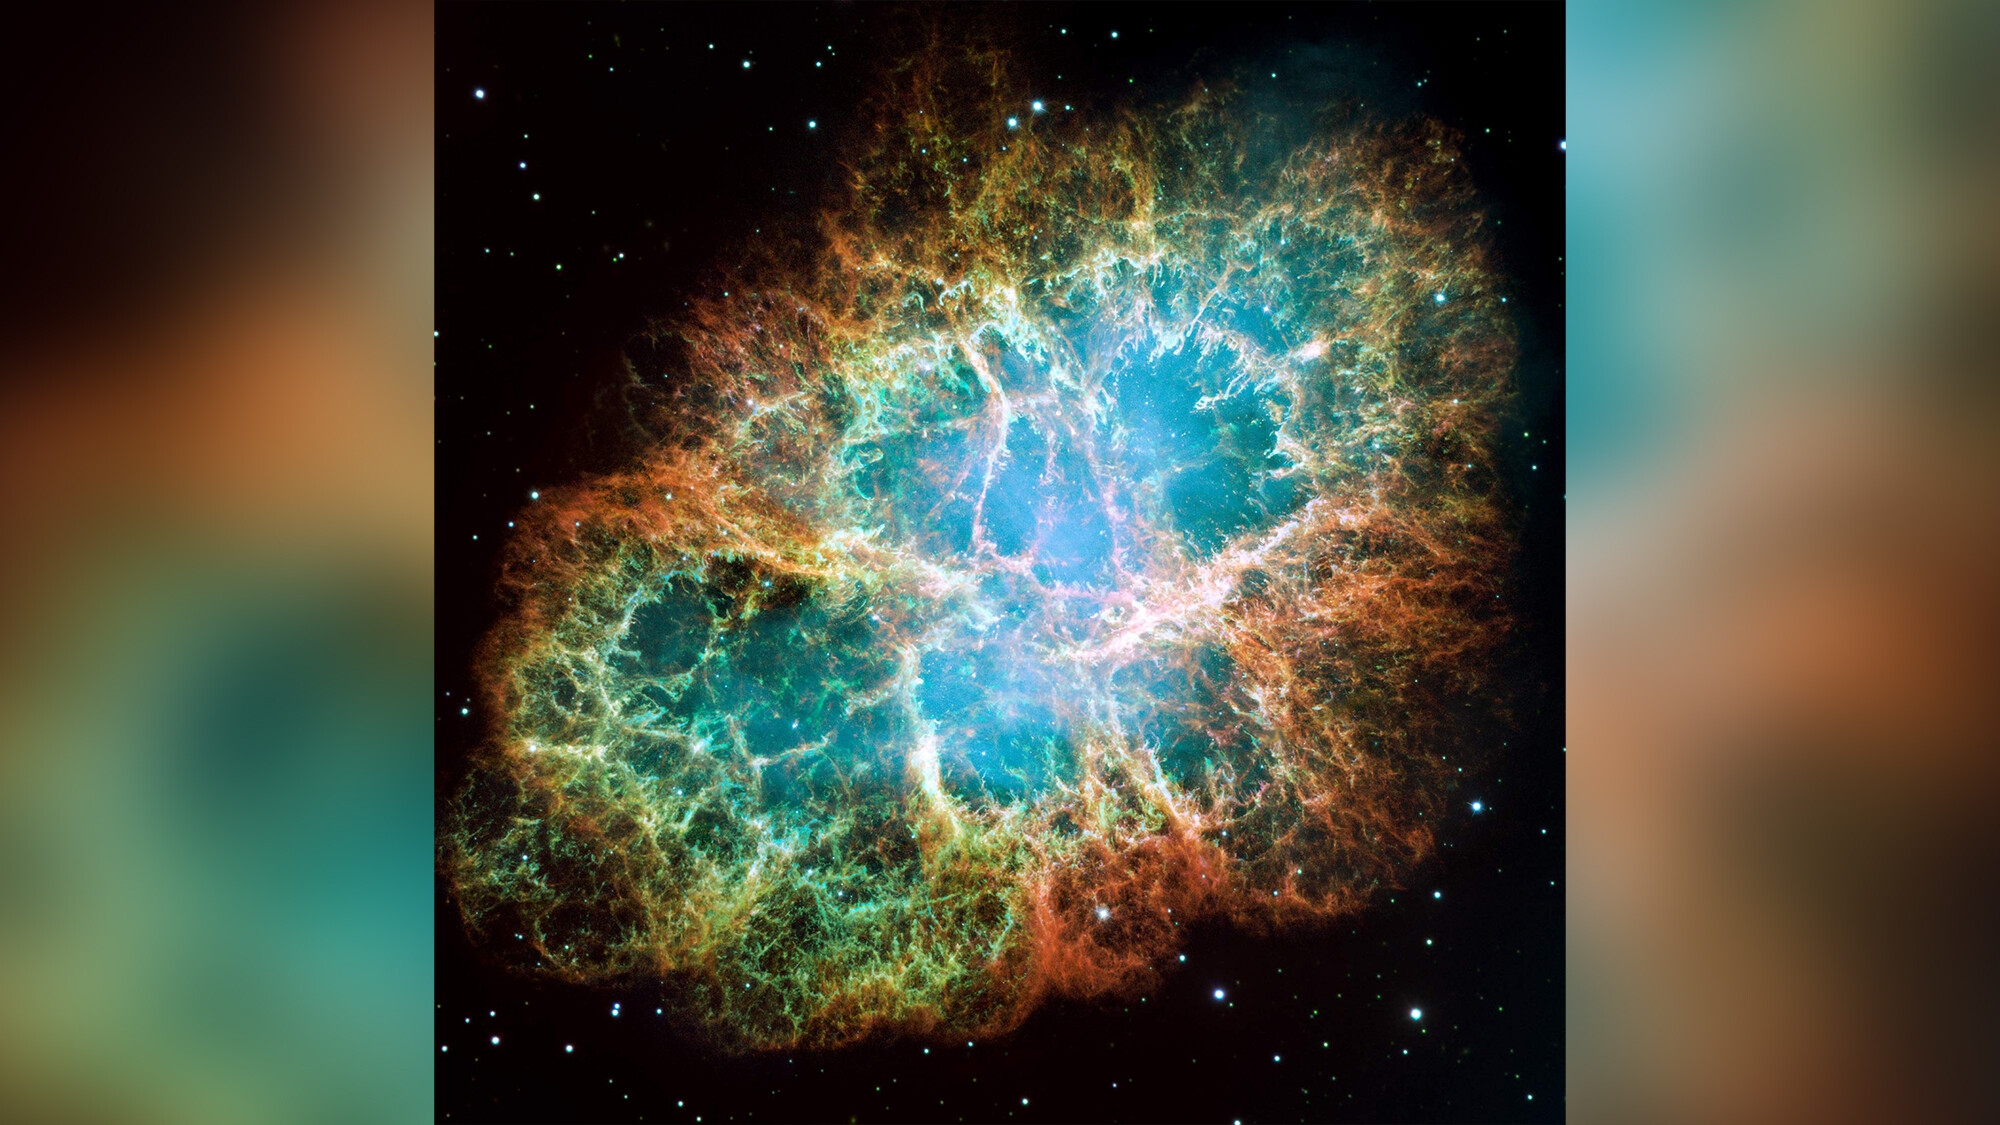 Giant radio pulses and X-rays come from the Crab Nebula